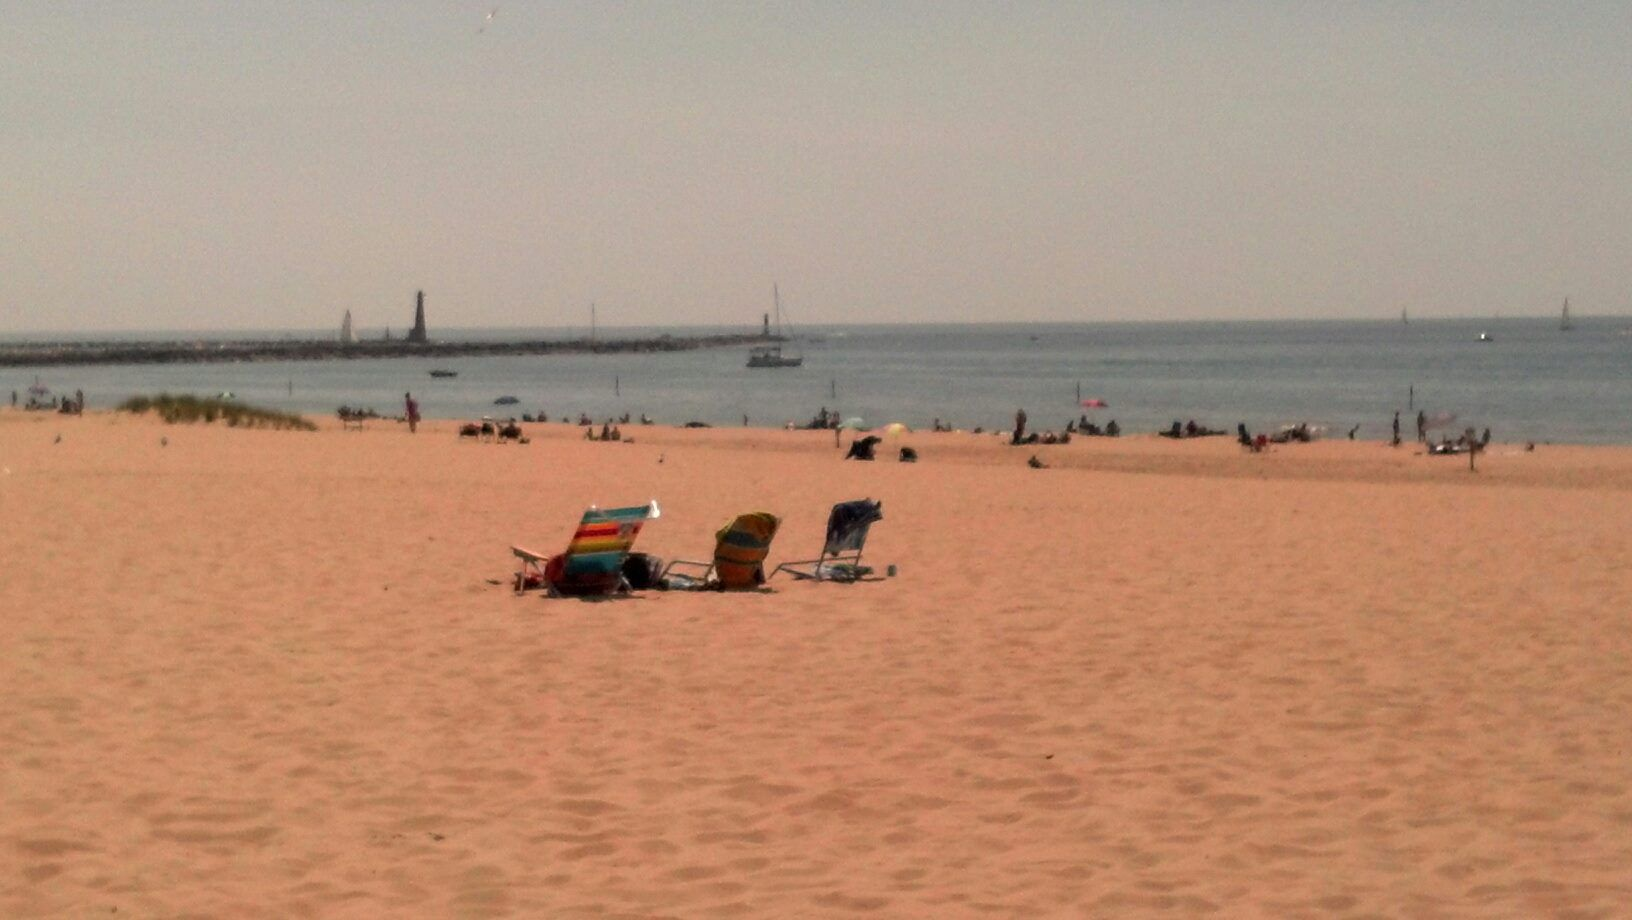 Muskegon State Park beach.....swimmers, sun bathers, boaters, lots of fun happening here.